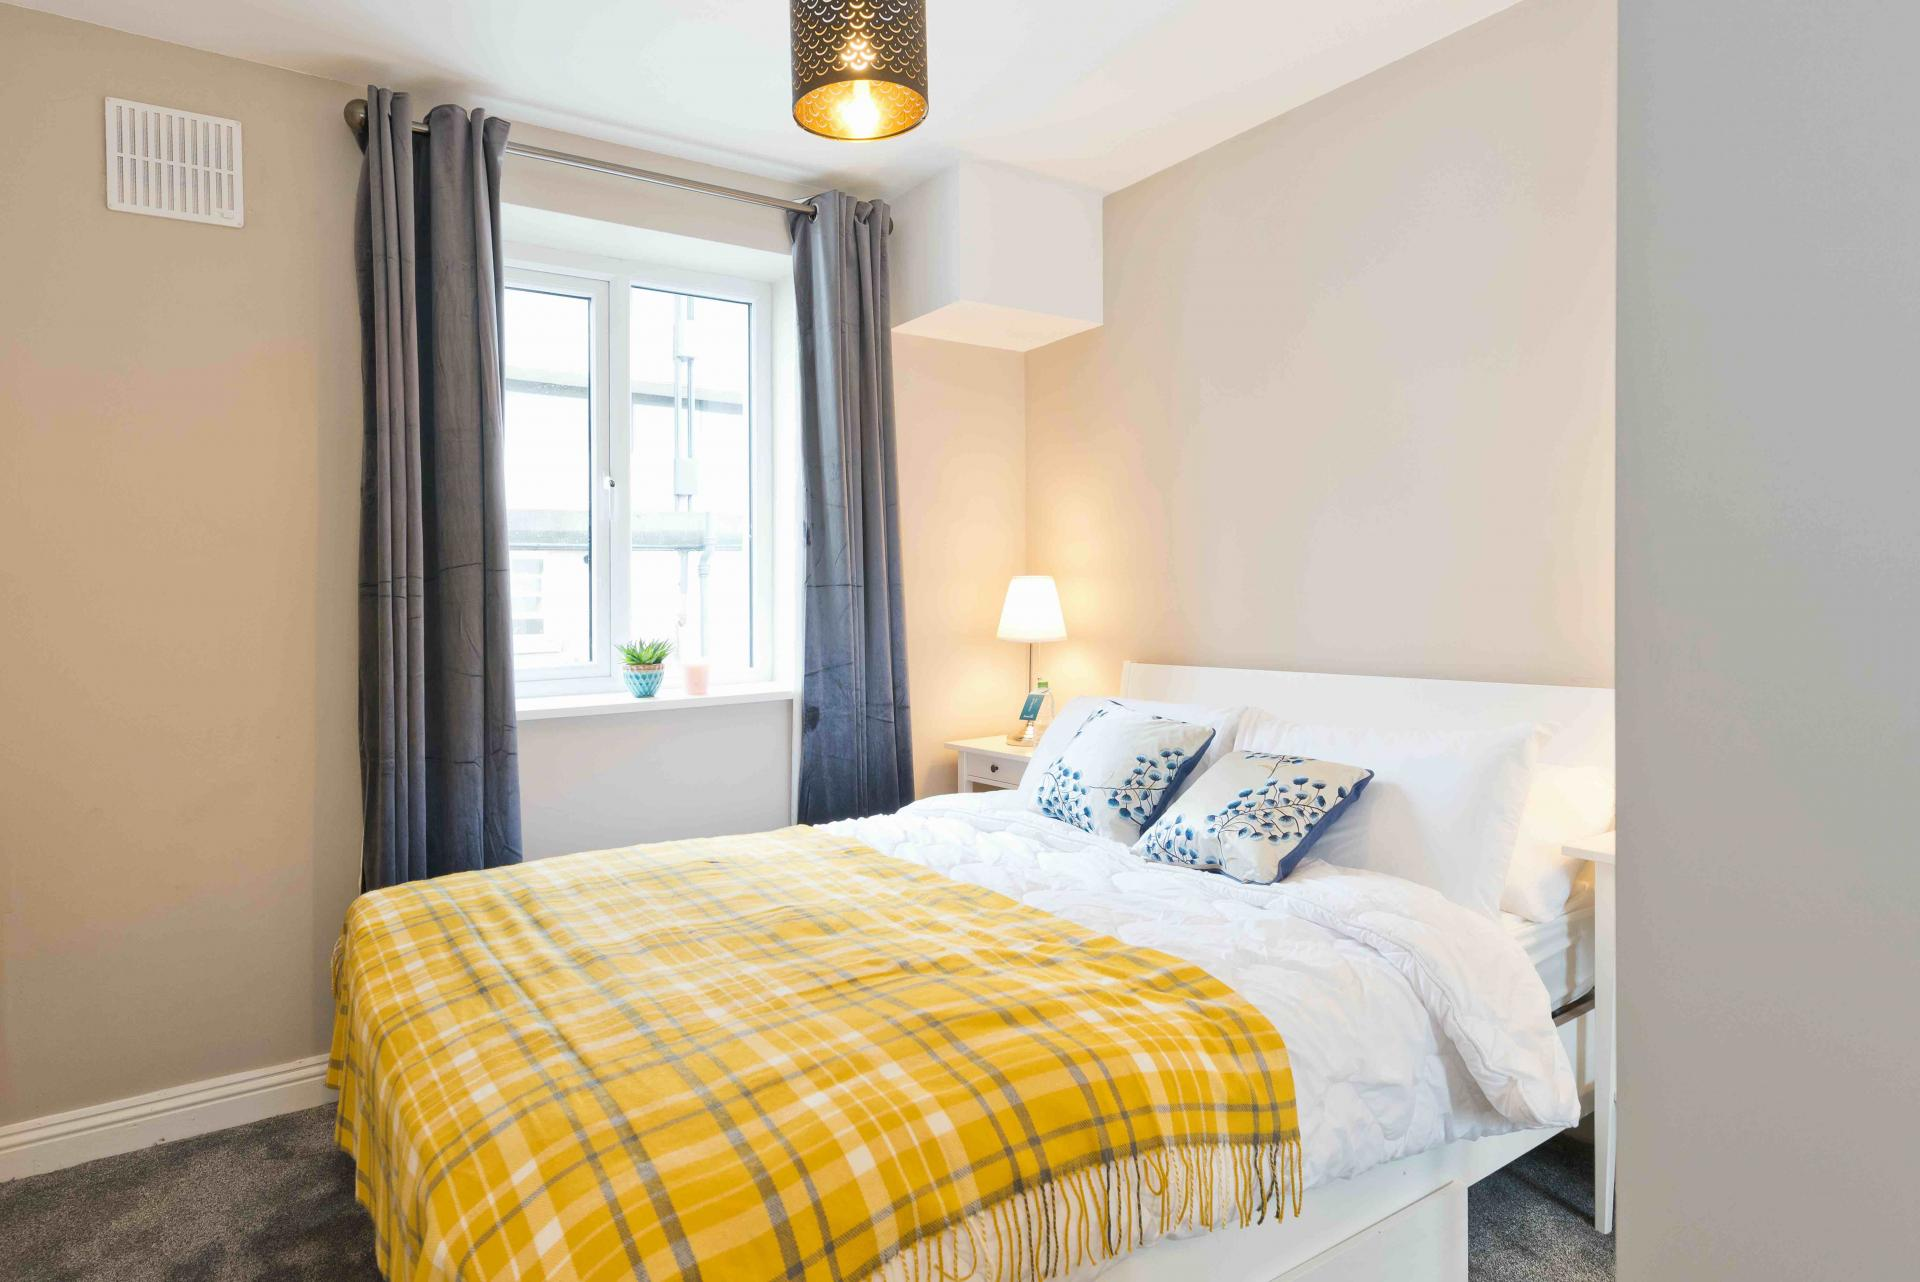 Bed at Crow Street Apartment, Temple Bar, Dublin - Citybase Apartments